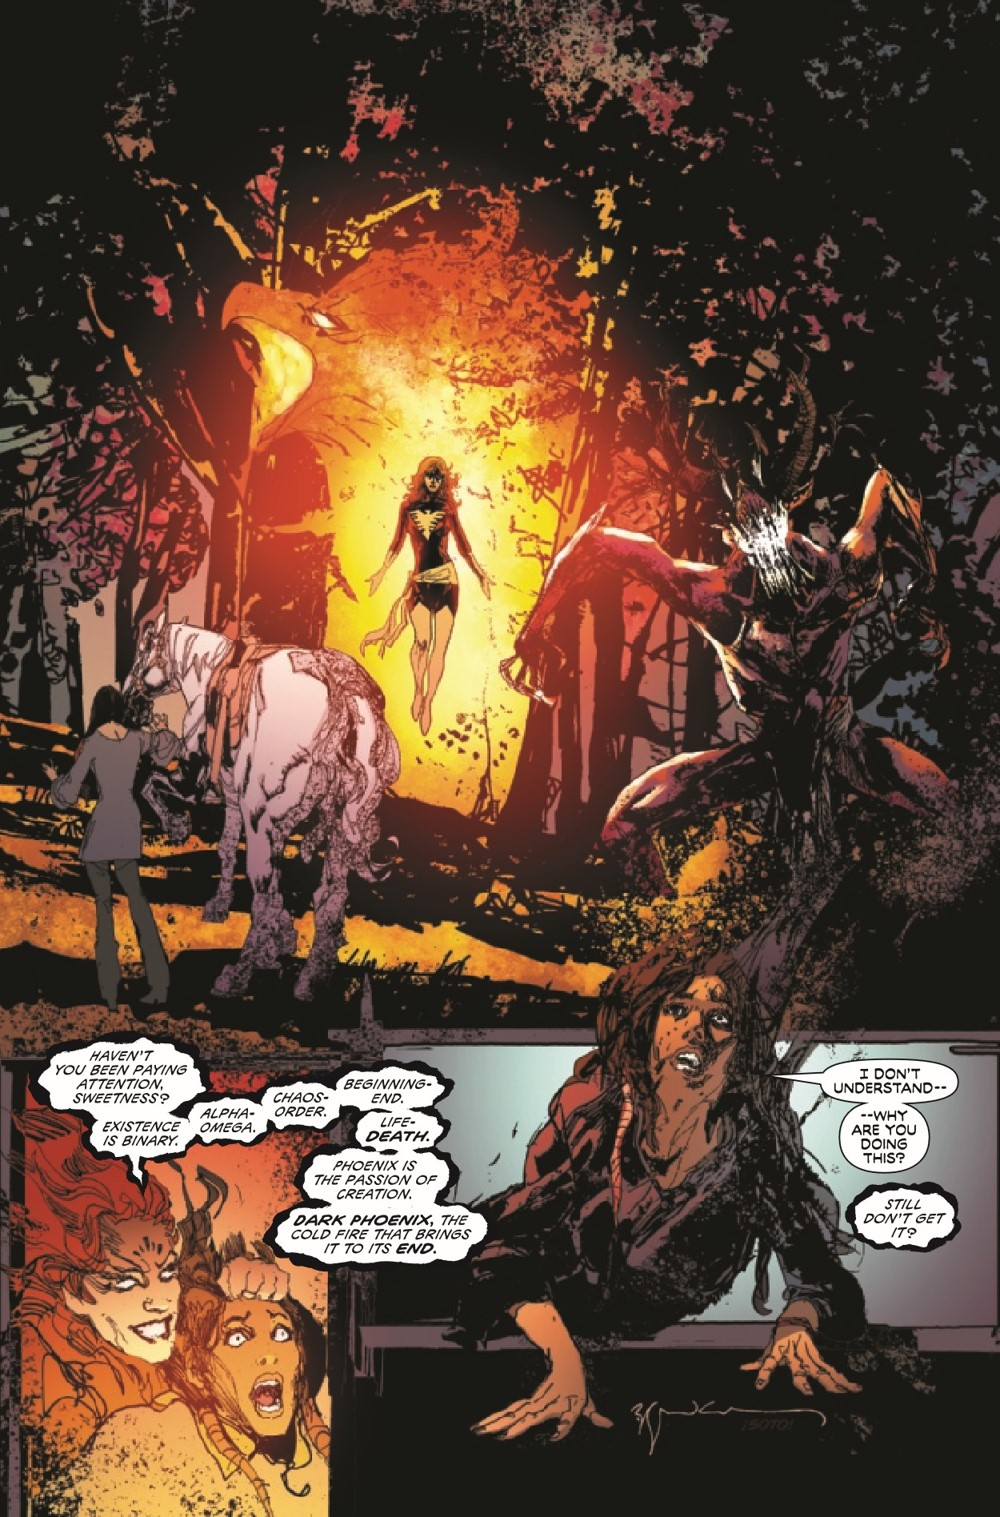 CLAREMONTSP2020001_Preview-4 ComicList Previews: CHRIS CLAREMONT ANNIVERSARY SPECIAL #1